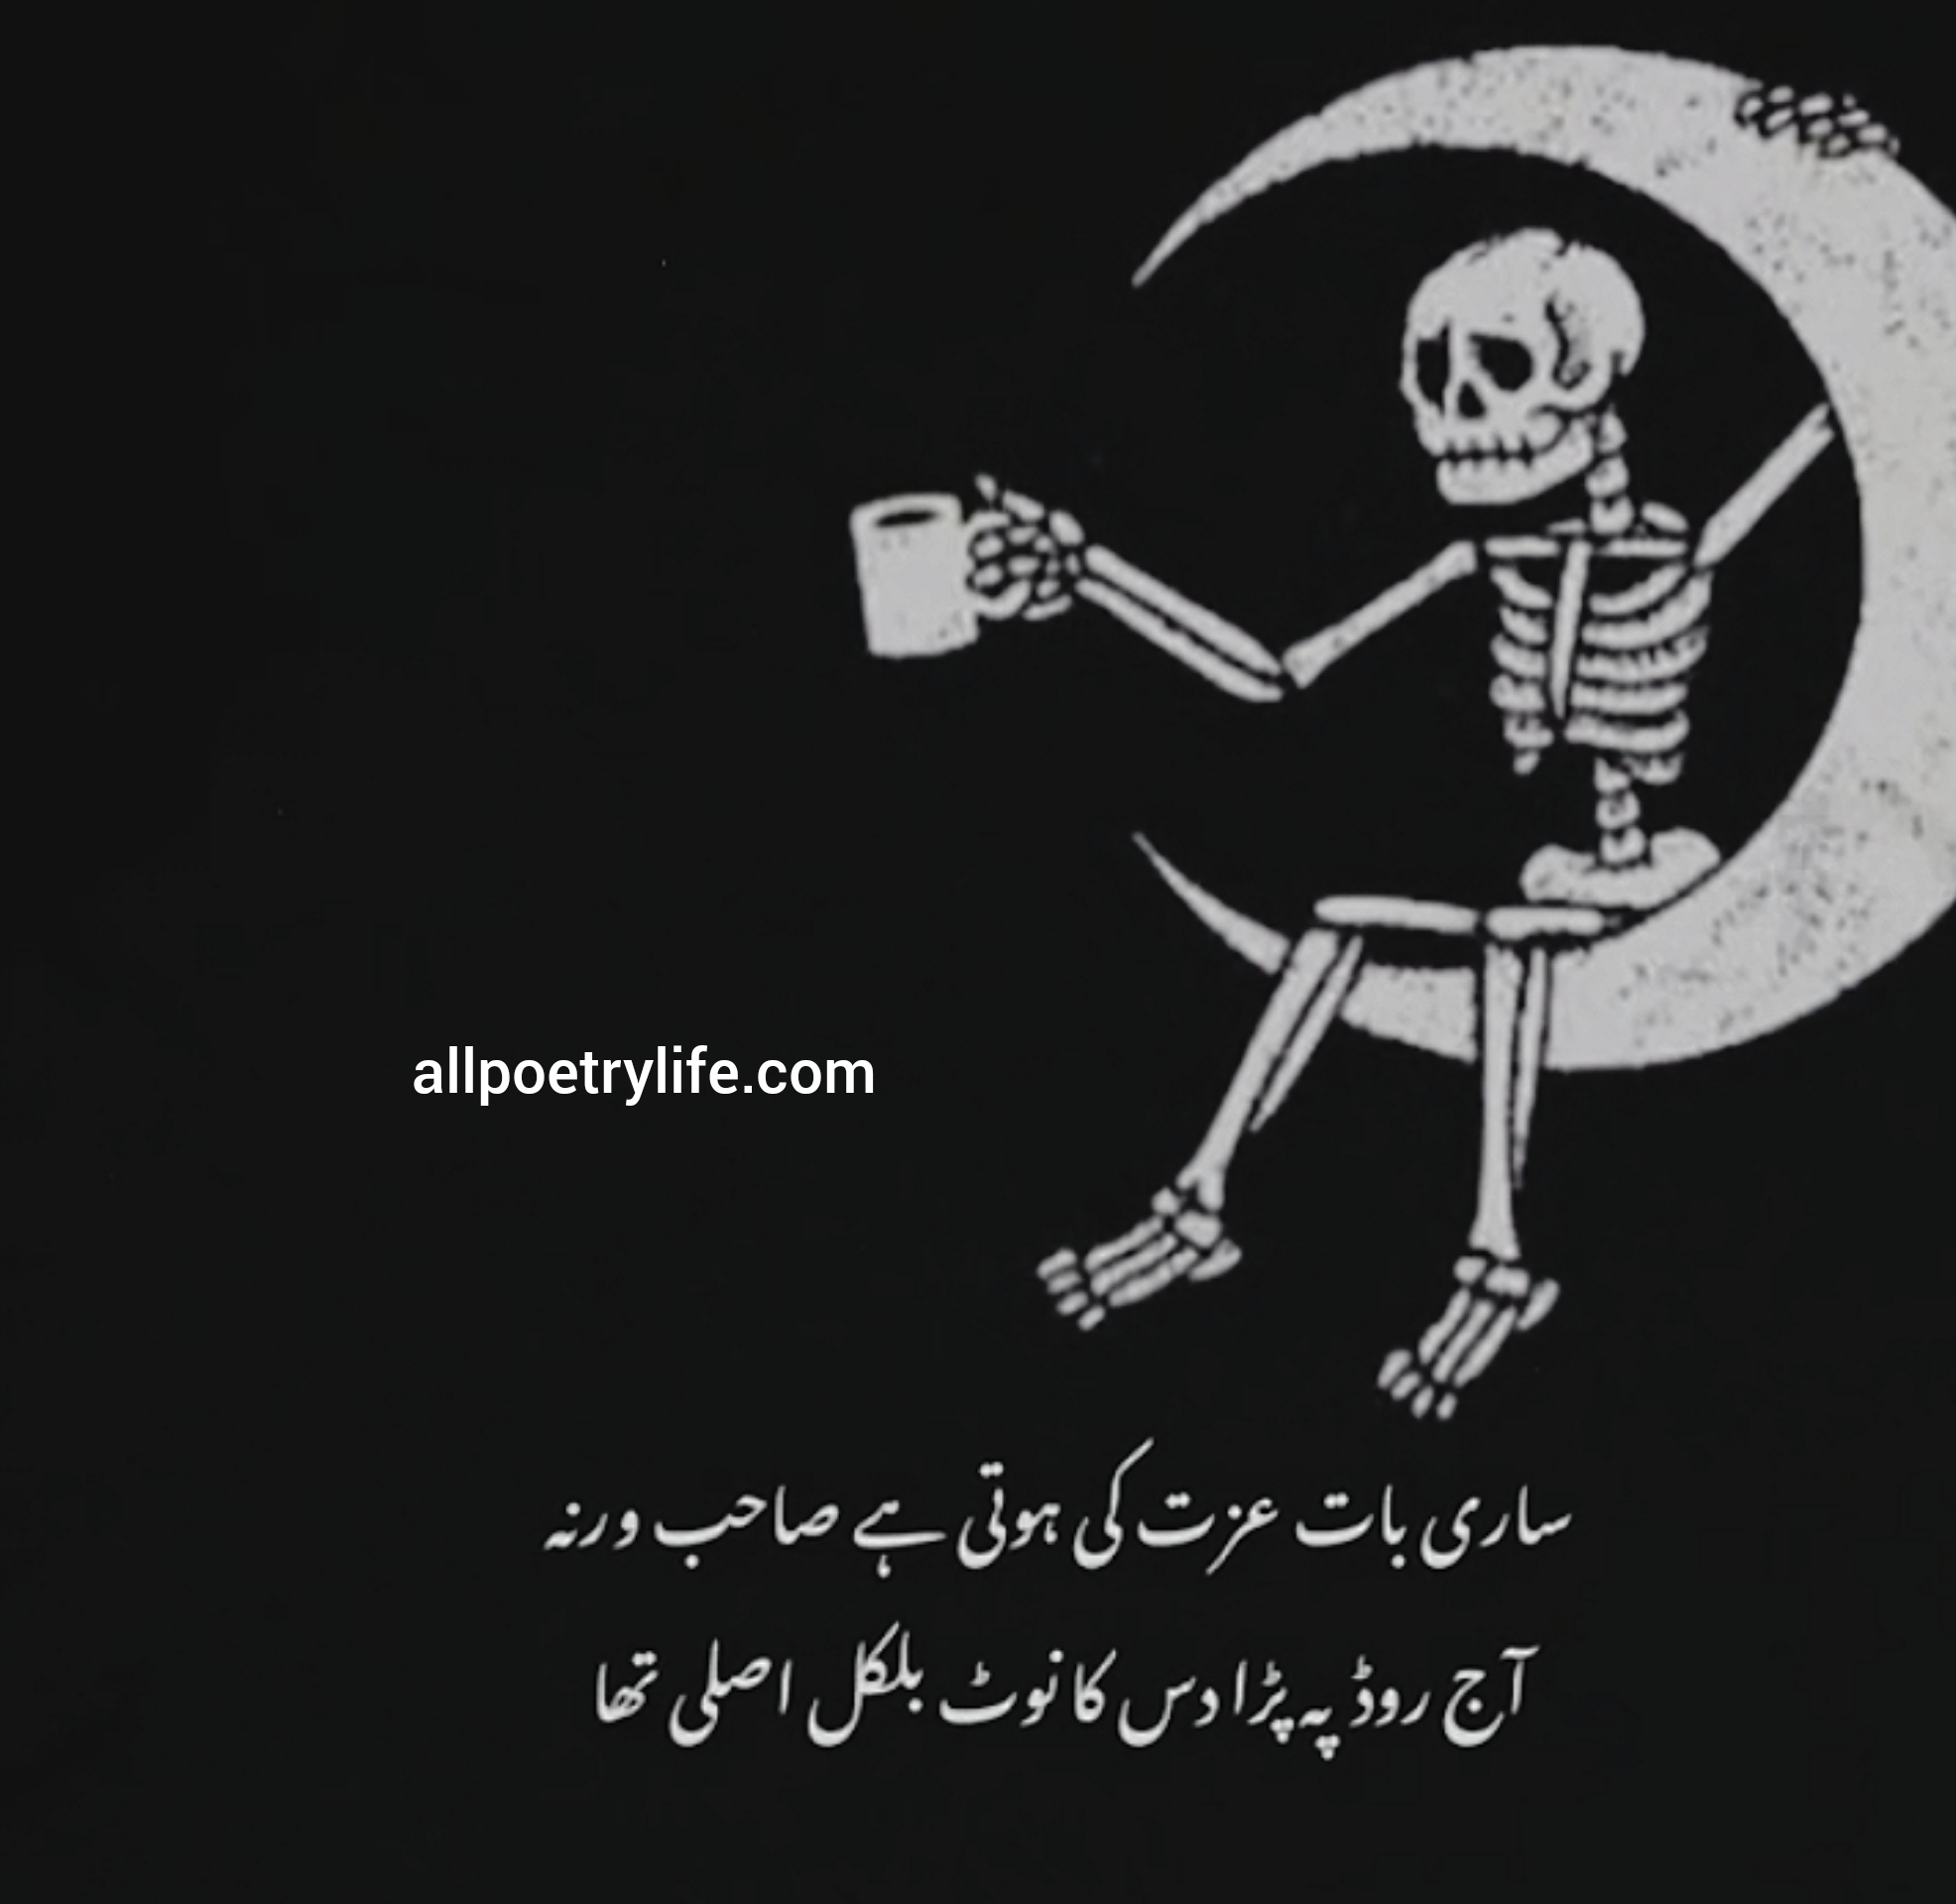 izzat poetry, izzat quotes in urdu, aurat ki izzat quotes in urdu, izzat poetry in urdu, izzat shayari urdu, aurat ki izzat poetry, izzat e nafs quotes in urdu, izzat urdu poetry, izzat e nafs poetry, izzat poetry in urdu sms, larki ki izzat poetry, aurat ki izzat poetry in urdu, shayari on izzat by ghalib, aurat ki izzat shayari in urdu, izzat urdu shayari, poetry on izzat, mohabbat aur izzat quotes in urdu, izzat quotes urdu, izzat poetry urdu, izzat status in urdu, poetry on izzat in urdu, izzat ki shayari in urdu, urdu poetry on izzat, baat poetry, dil ki baat poetry, achi baat poetry, urdu poetry dil ki baat, achi baat poetry in urdu, baat urdu poetry, heart touching quotes, sad poetry in urdu, heart touching lines, heart touching status, sad poetry in urdu 2 lines, sad shayari urdu, poetry in urdu 2 lines, heart touching quotes in hindi, heart touching love quotes,heart touching lines in hindi, heart touching love quotes in hindi, sad poetry sms, deep poetry in urdu, heart touching quotes in urdu, heart touching words, sad love poetry in urdu, dukhi poetry, best heart touching quotes, bewafa shayari urdu, sad poetry sms in urdu 2 lines, sad lines in urdu, very sad shayari urdu, love poetry in urdu 2 lines, best heart touching lines, emotional poetry in urdu, sad poetry in urdu shayari, heart touching sorry messages for girlfriend, heart touching mothers day quotes, heart touching sorry messages for boyfriend, heart touching friendship messages, bewafa poetry in urdu, heart touching message for teachers, heart touching thoughts, heart touching poetry in urdu, heart touching caption, heart touching love quotes in marathi, heart touching sad quotes, heart touching love quotes in malayalam, john elia sad poetry, heart touching message for brother, heart touching quotes about life, sad poetry in urdu sms, heart touching quotes in telugu, heart touching love quotes in marathi text, heart touching lines meaning in hindi, sad ghazal in urdu, eid sad poetry, heart touc